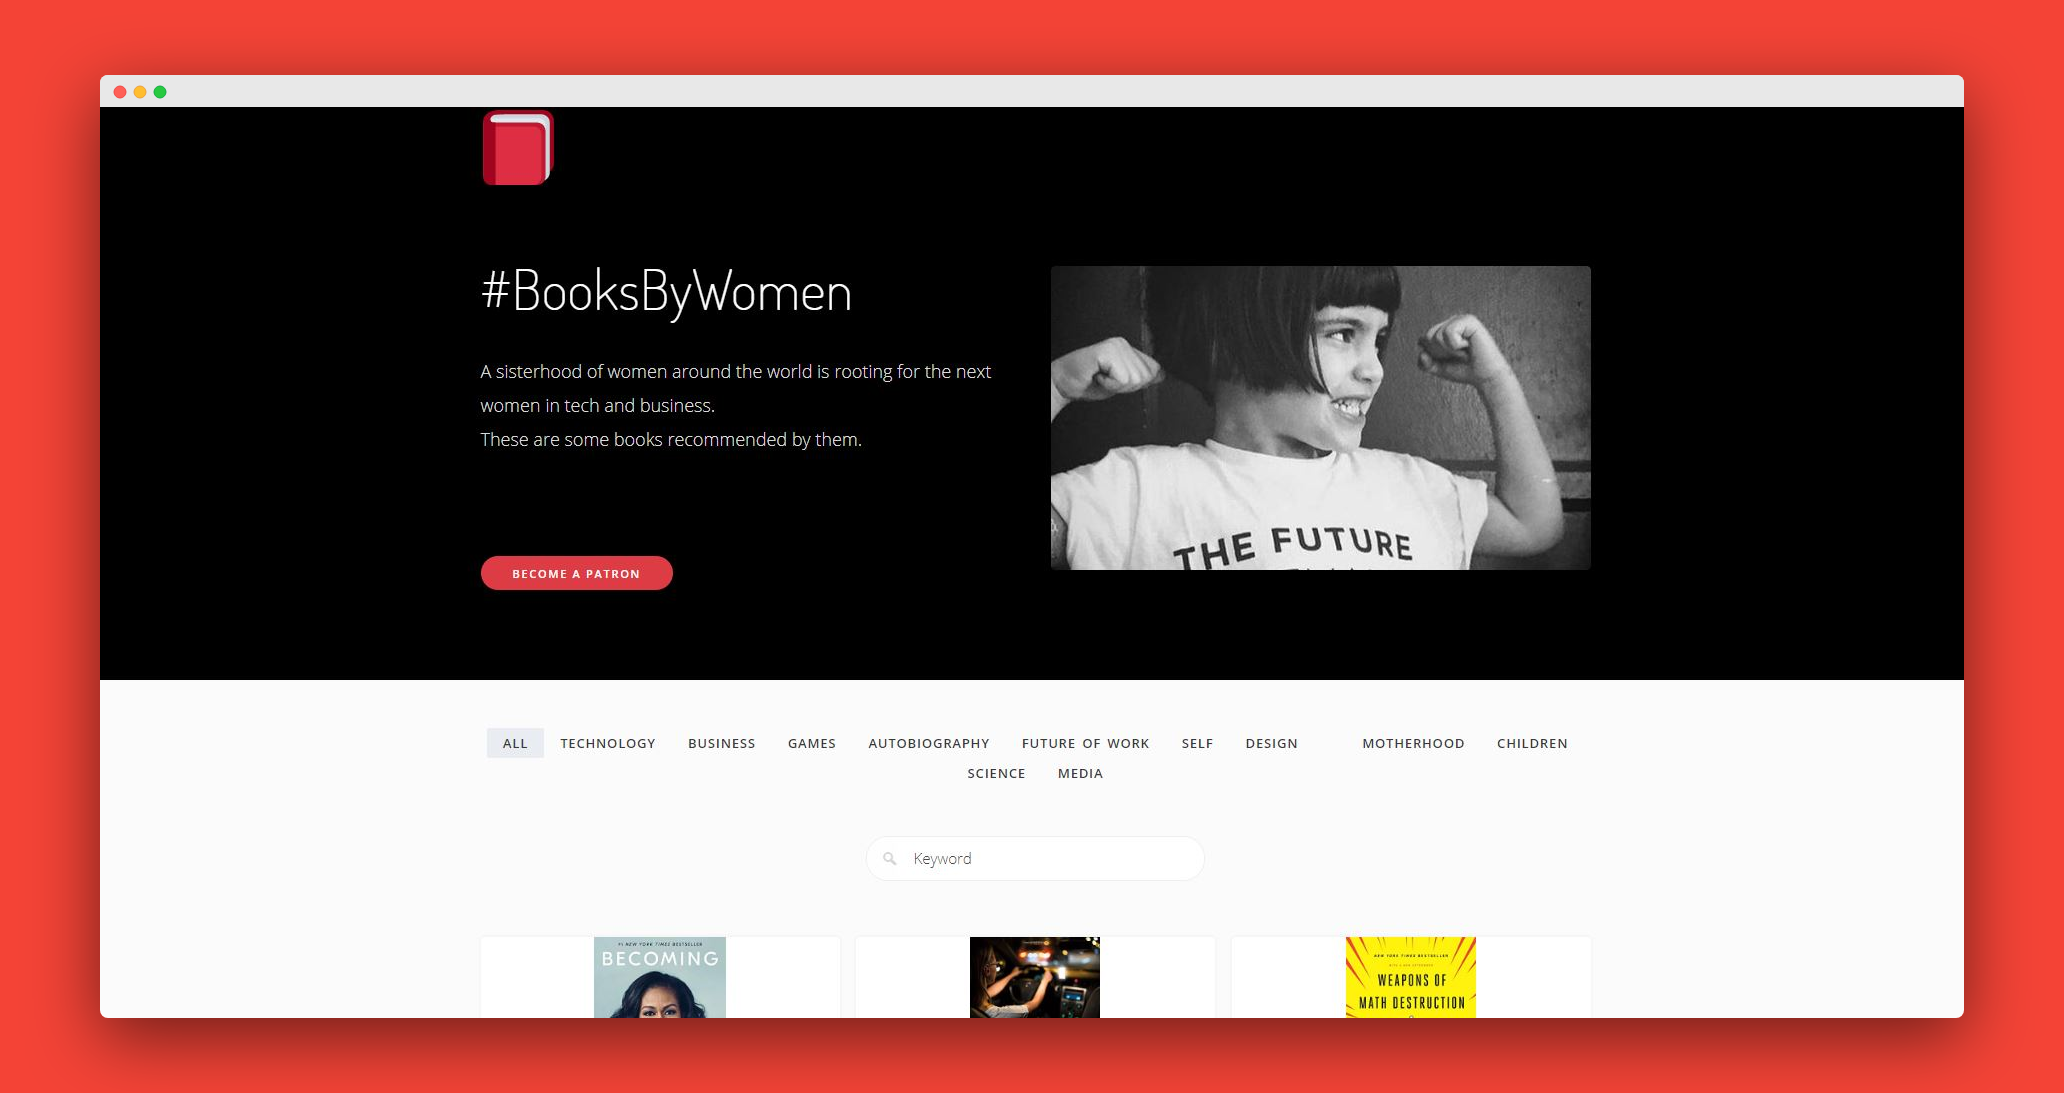 Crowdsourced and curated list of books by women